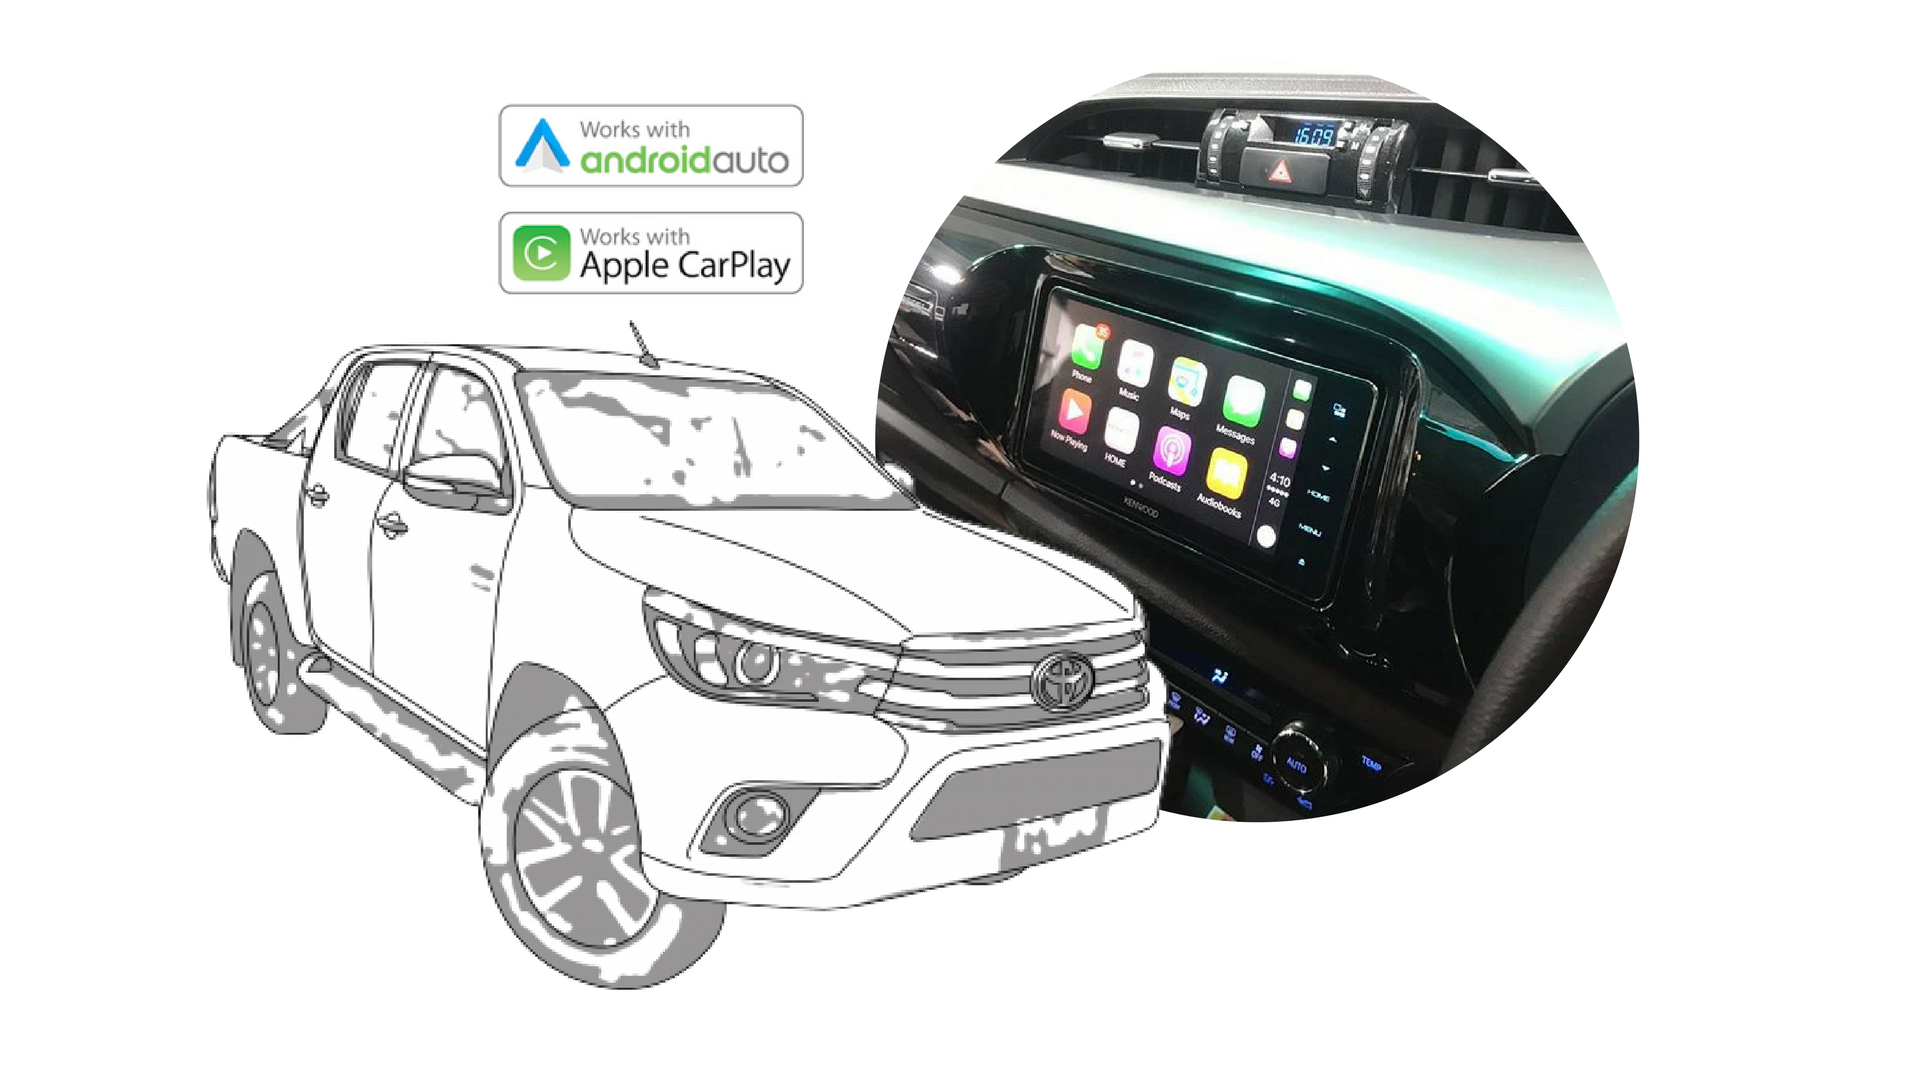 apple carplay android auto upgrade for toyota hilux 2016. Black Bedroom Furniture Sets. Home Design Ideas